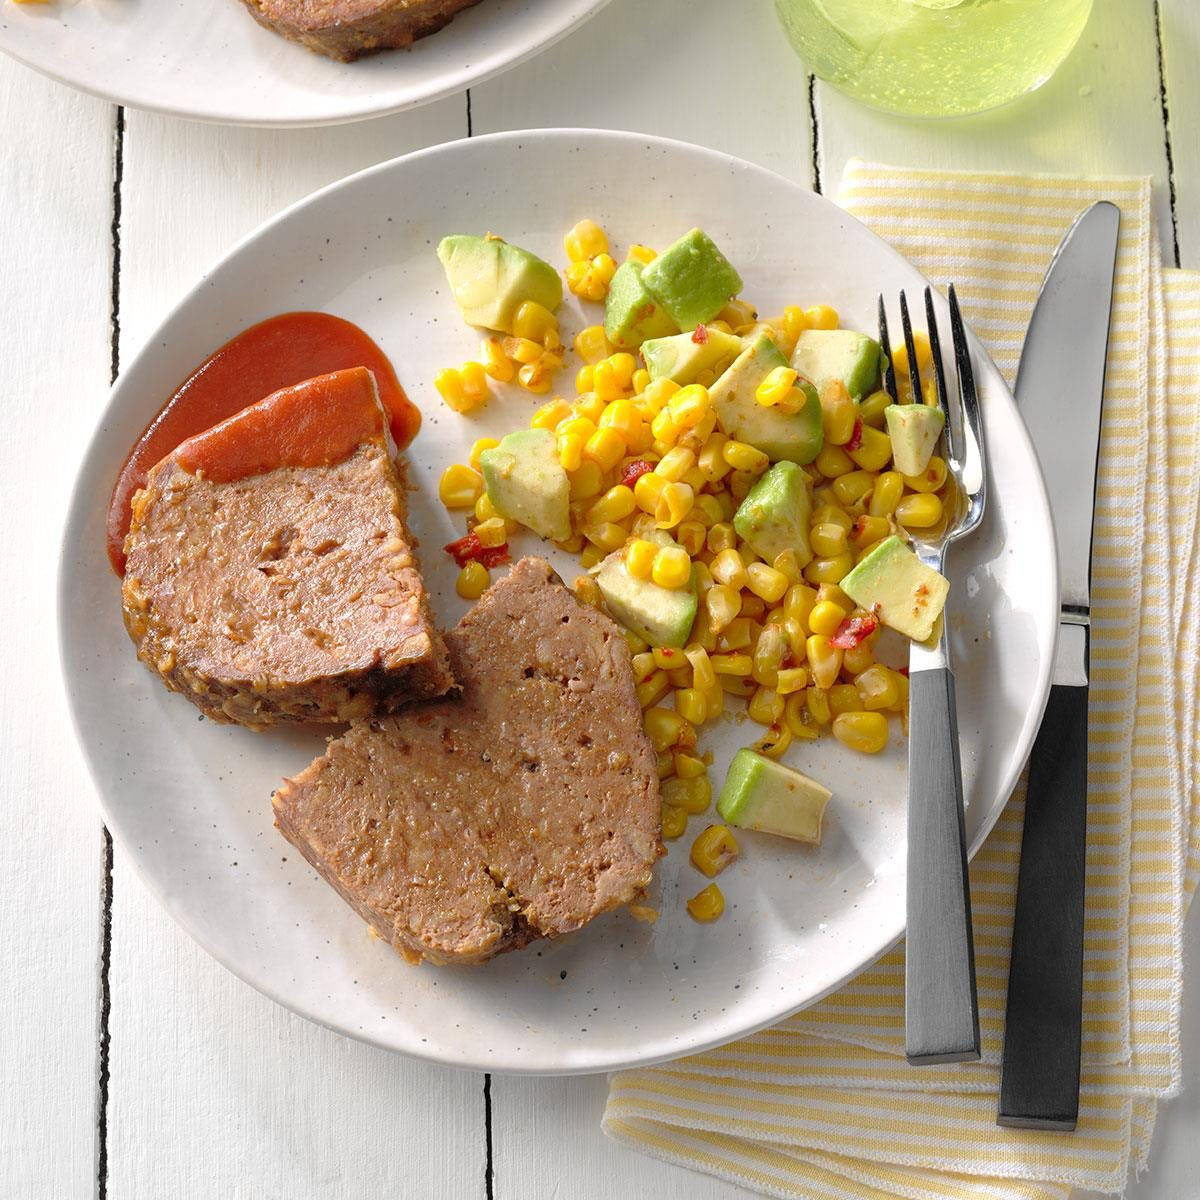 Day 3: Slow-Cooker Meat Loaf